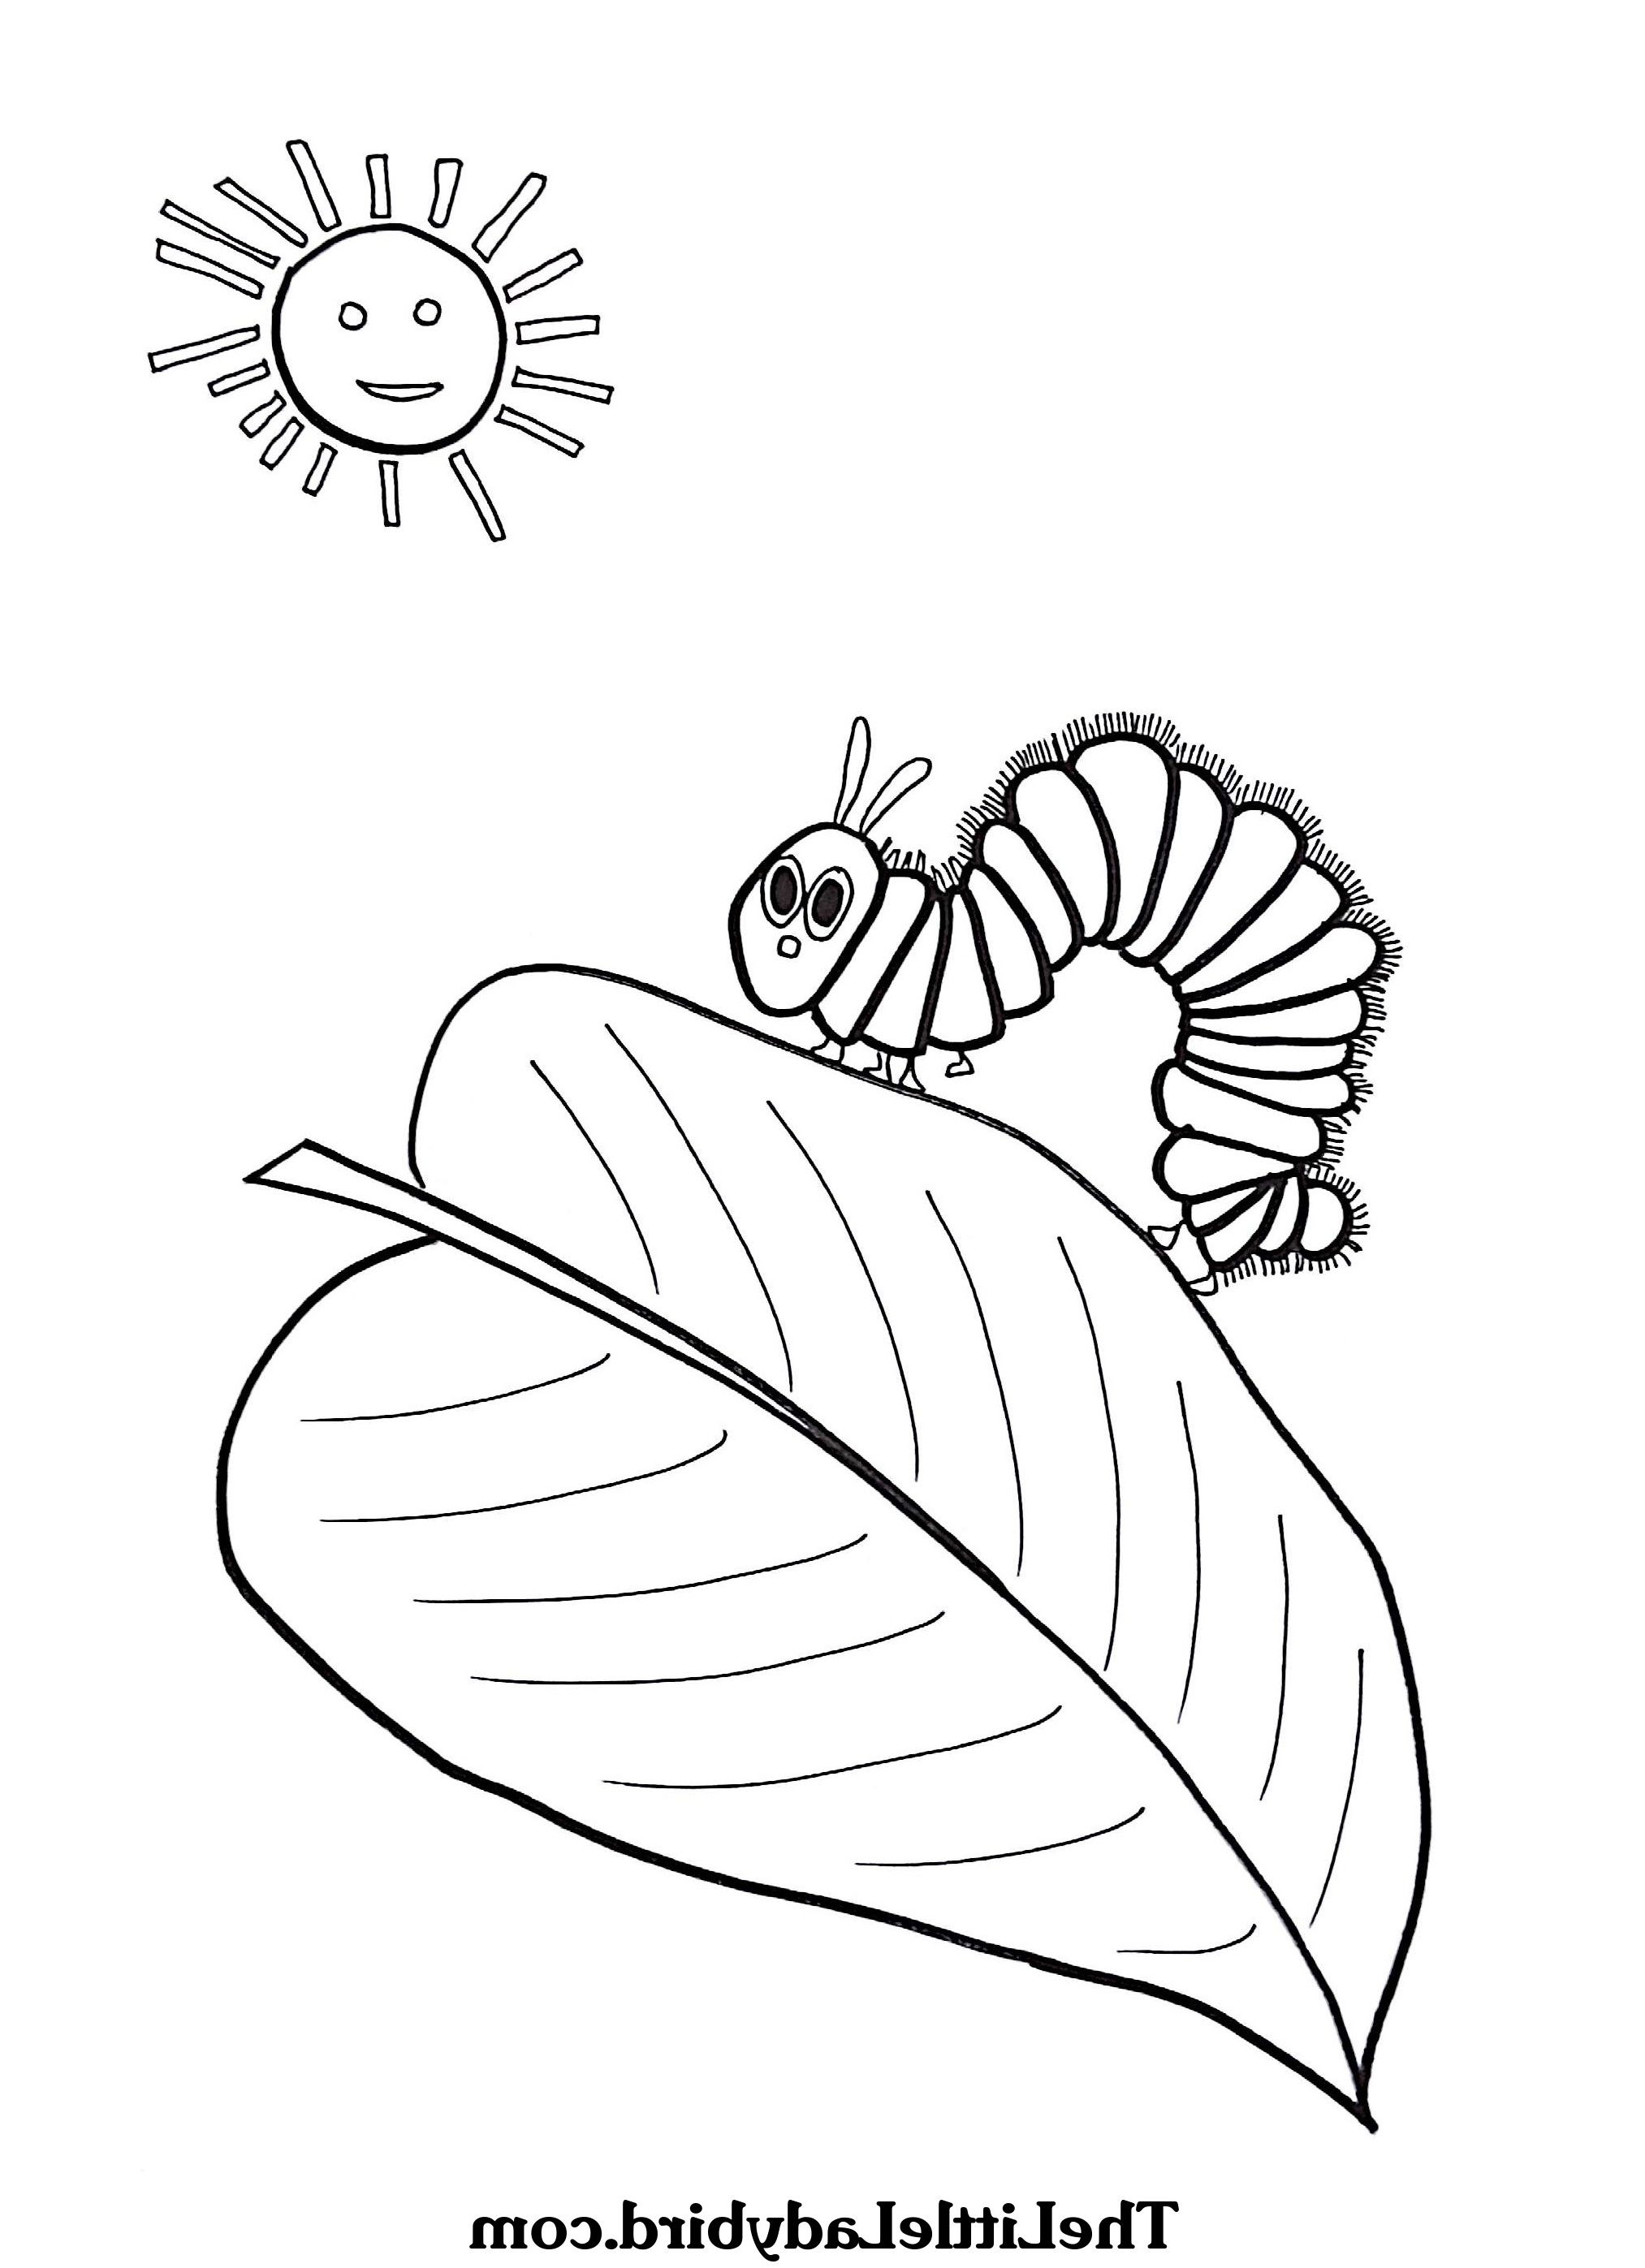 Hungry Caterpillar Coloring Pages Very Hungry Caterpillar Coloring Page Dxjz Free The Hungry Entitlementtrap Com Butterfly Coloring Page Hungry Caterpillar Coloring Pages